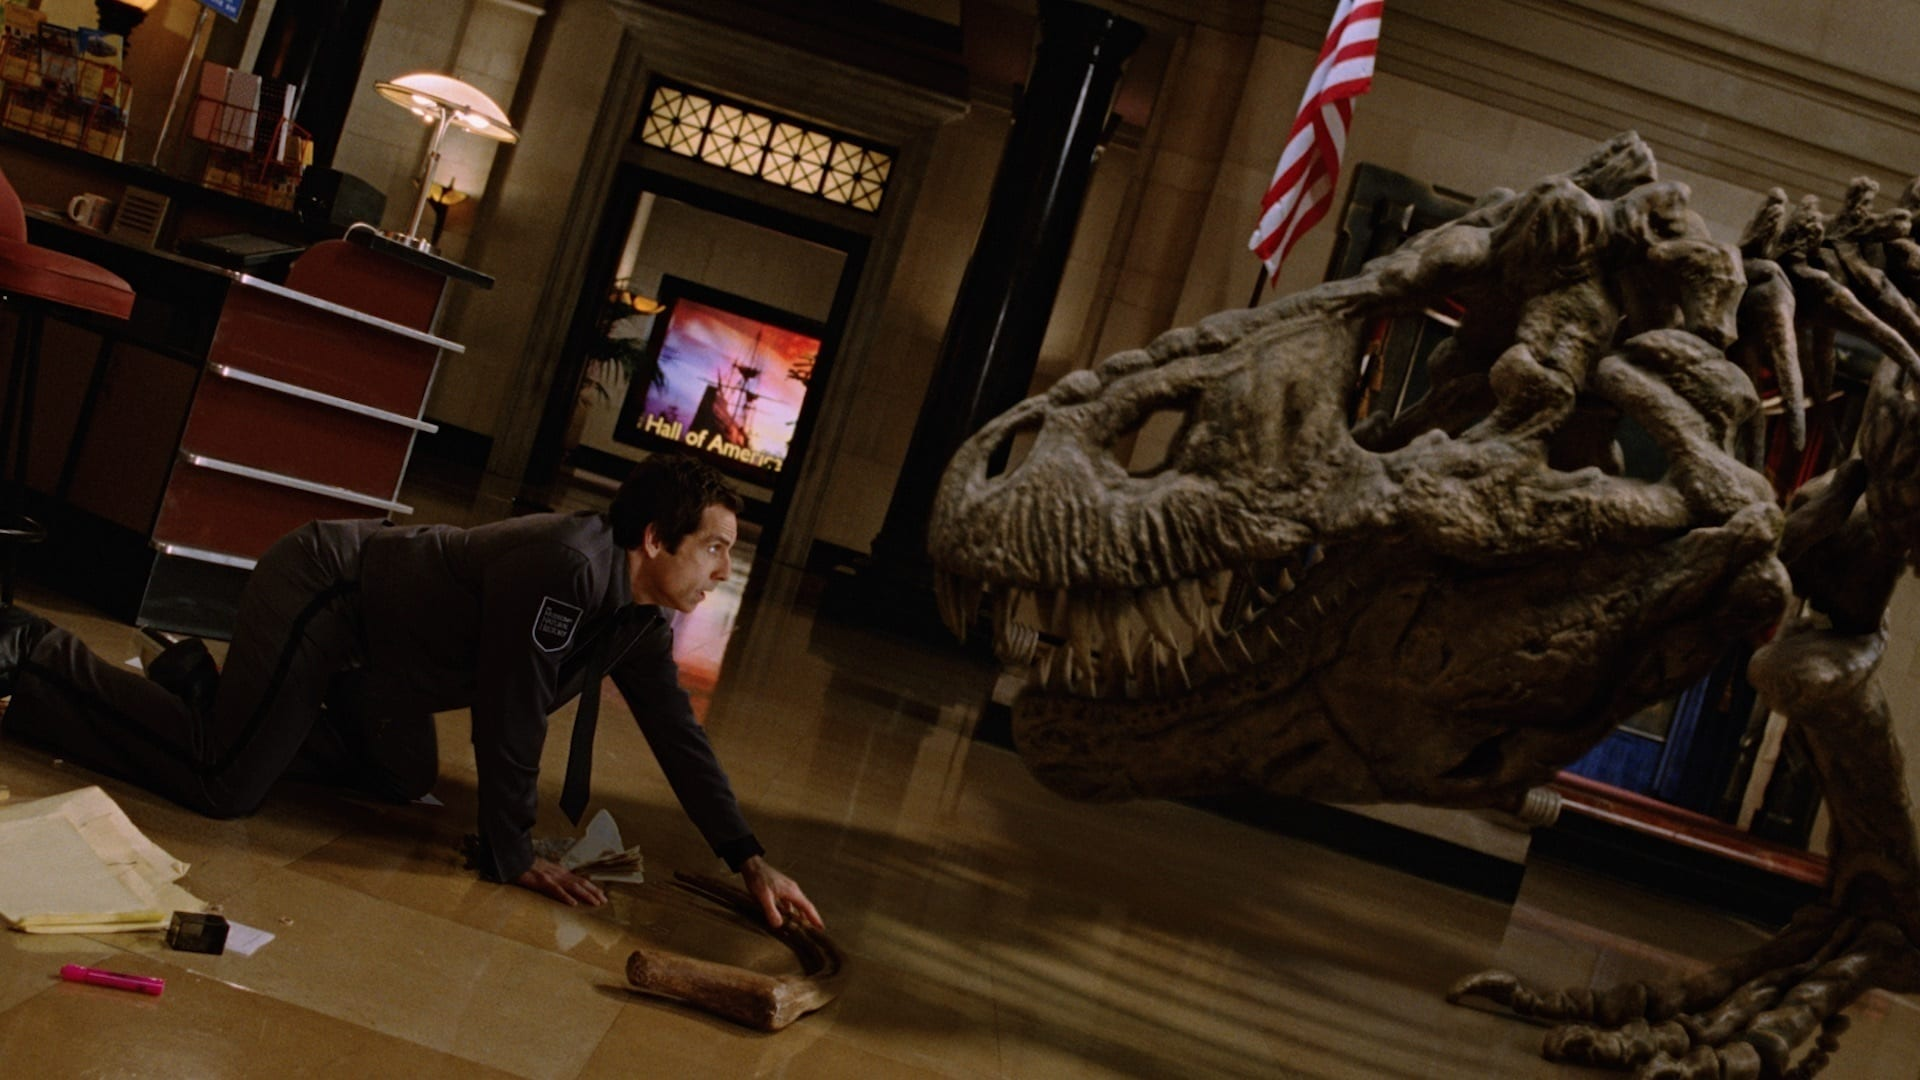 A still image from Night at the museum